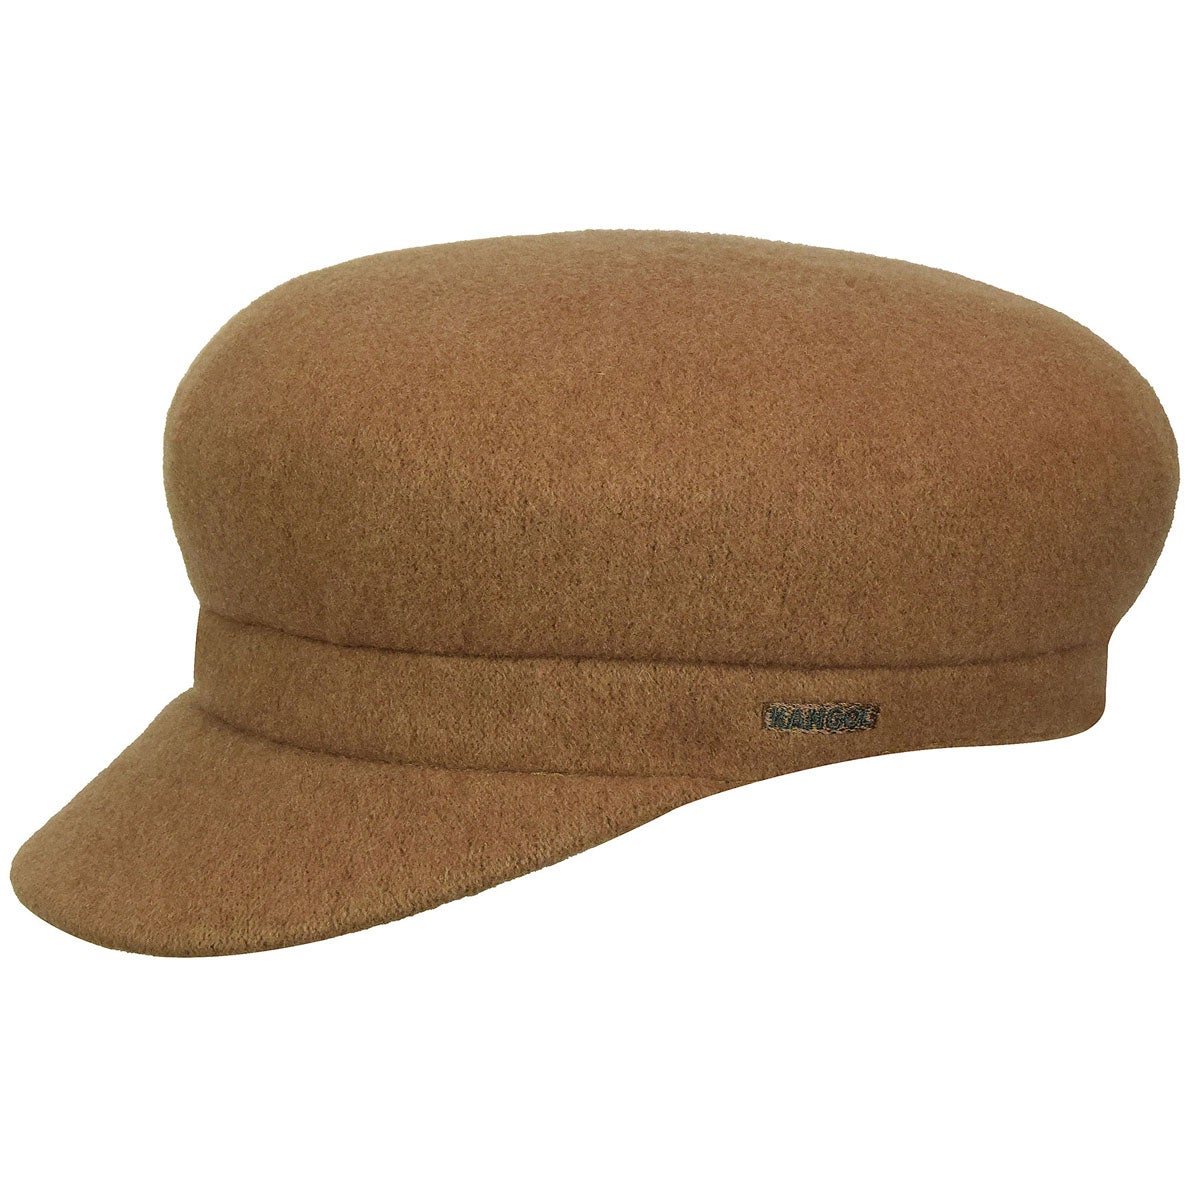 1960s – 70s Style Men's Hats Wool Enfield $63.00 AT vintagedancer.com